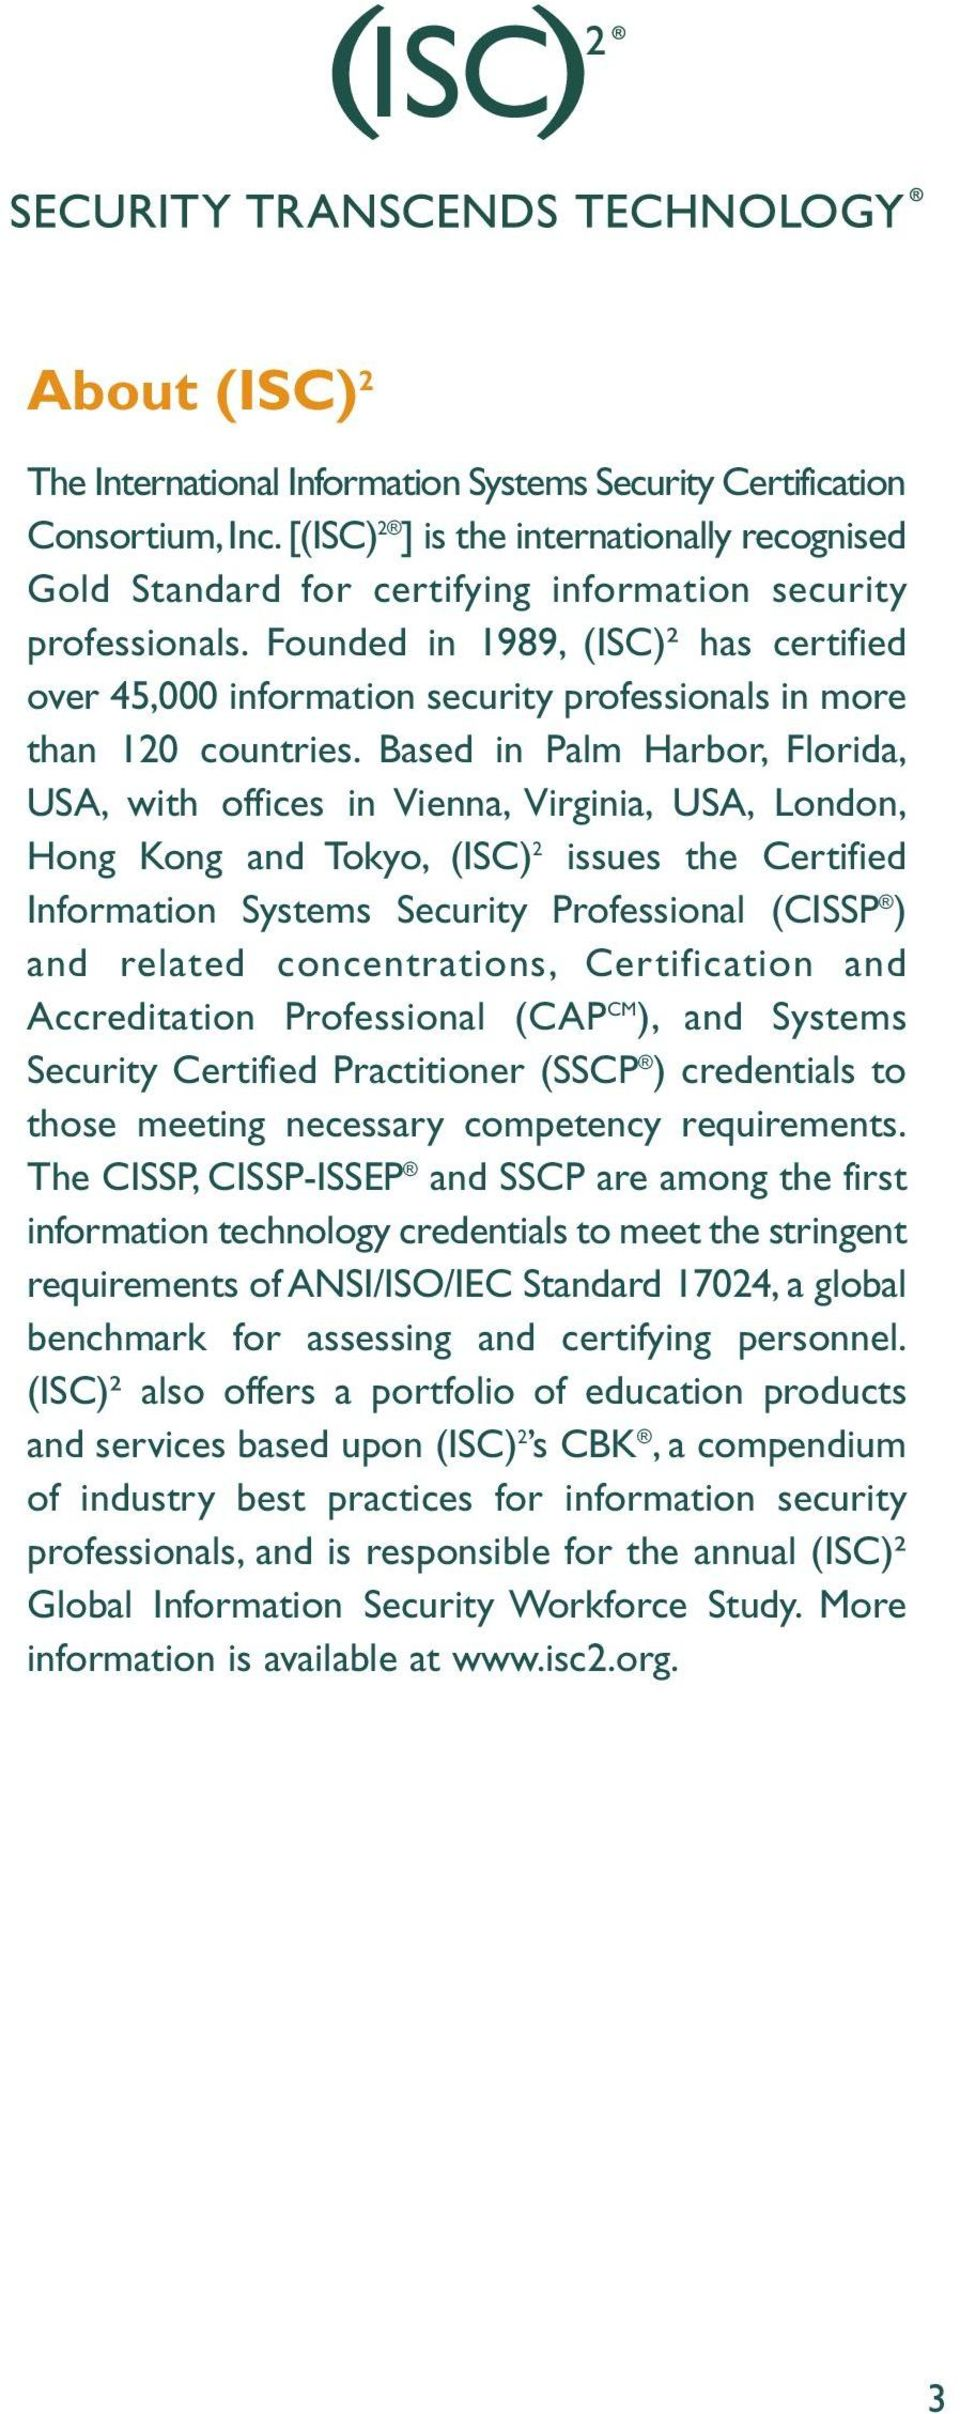 Founded in 1989, (ISC)² has certified over 45,000 information security professionals in more than 120 countries.